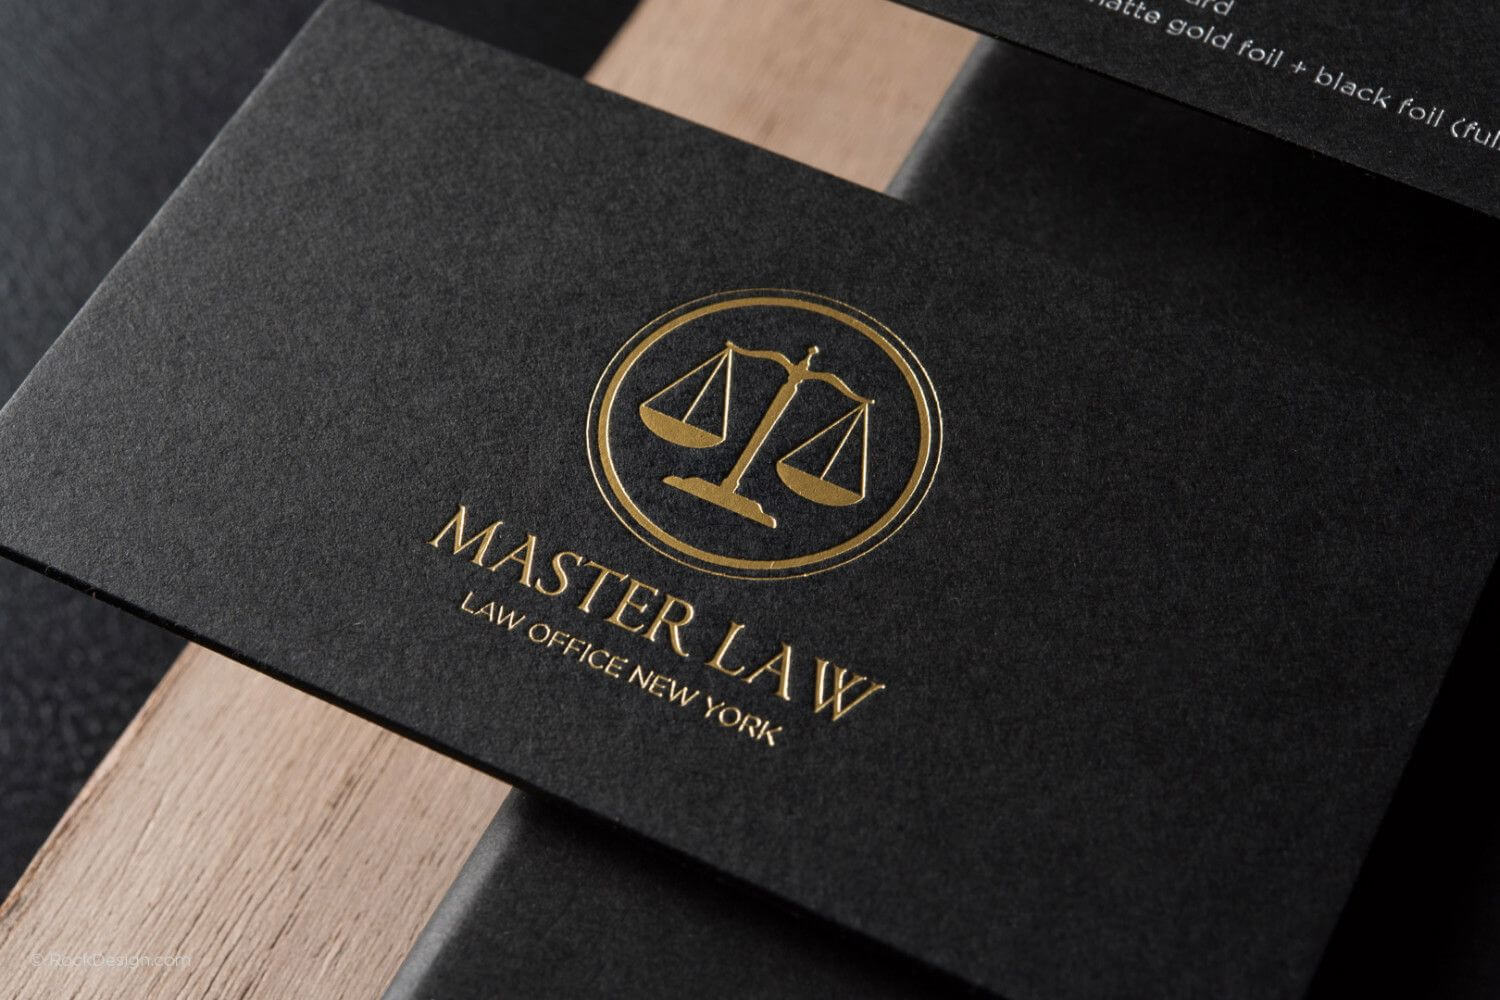 Free Lawyer Business Card Template   Rockdesign   Lawyer With Legal Business Cards Templates Free